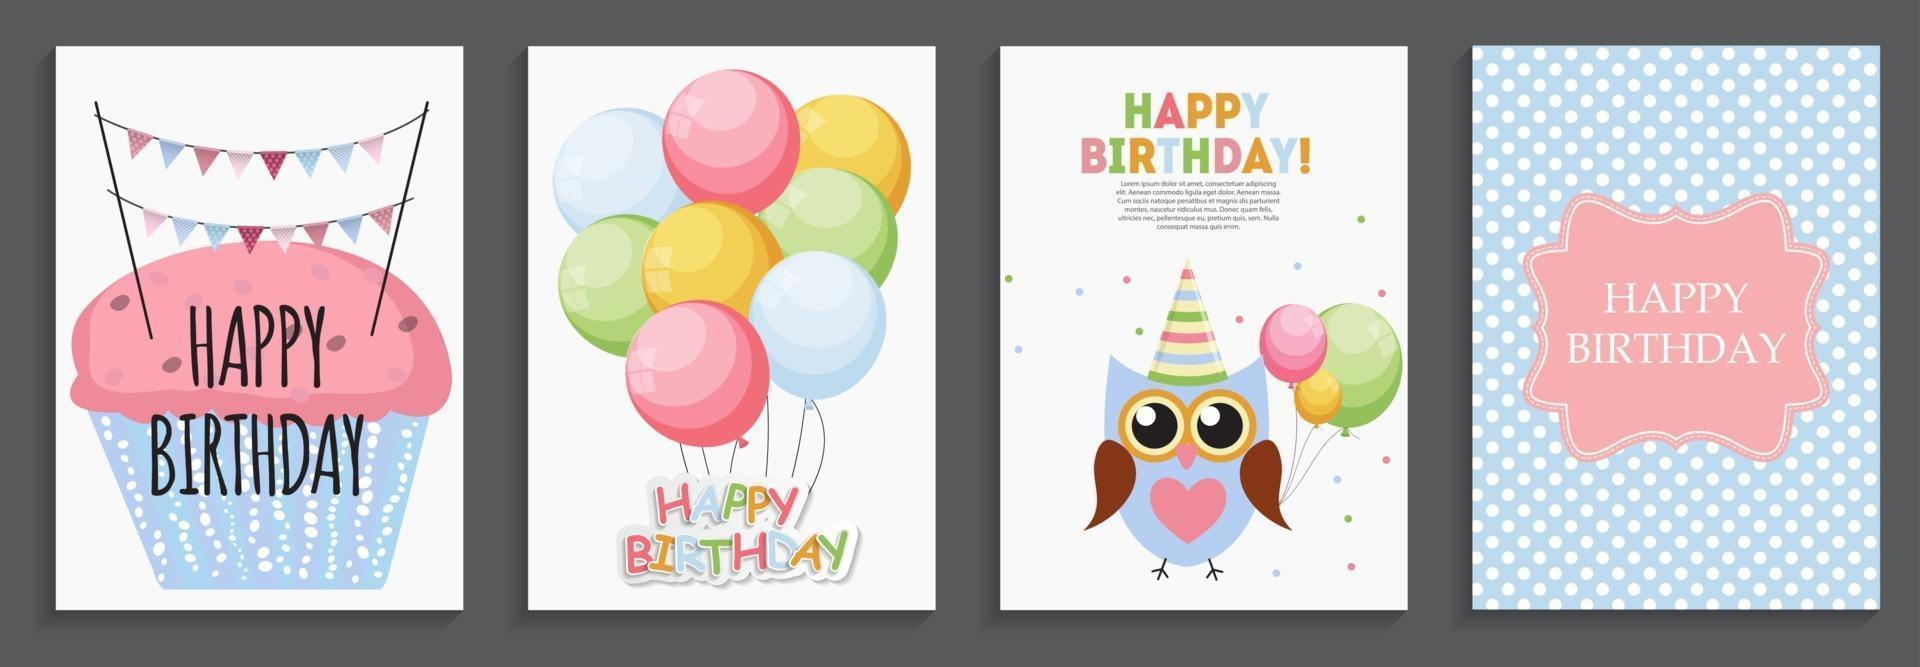 Happy Birthday, Holiday Greeting and Invitation Card Template Set with Balloons and Flags vector